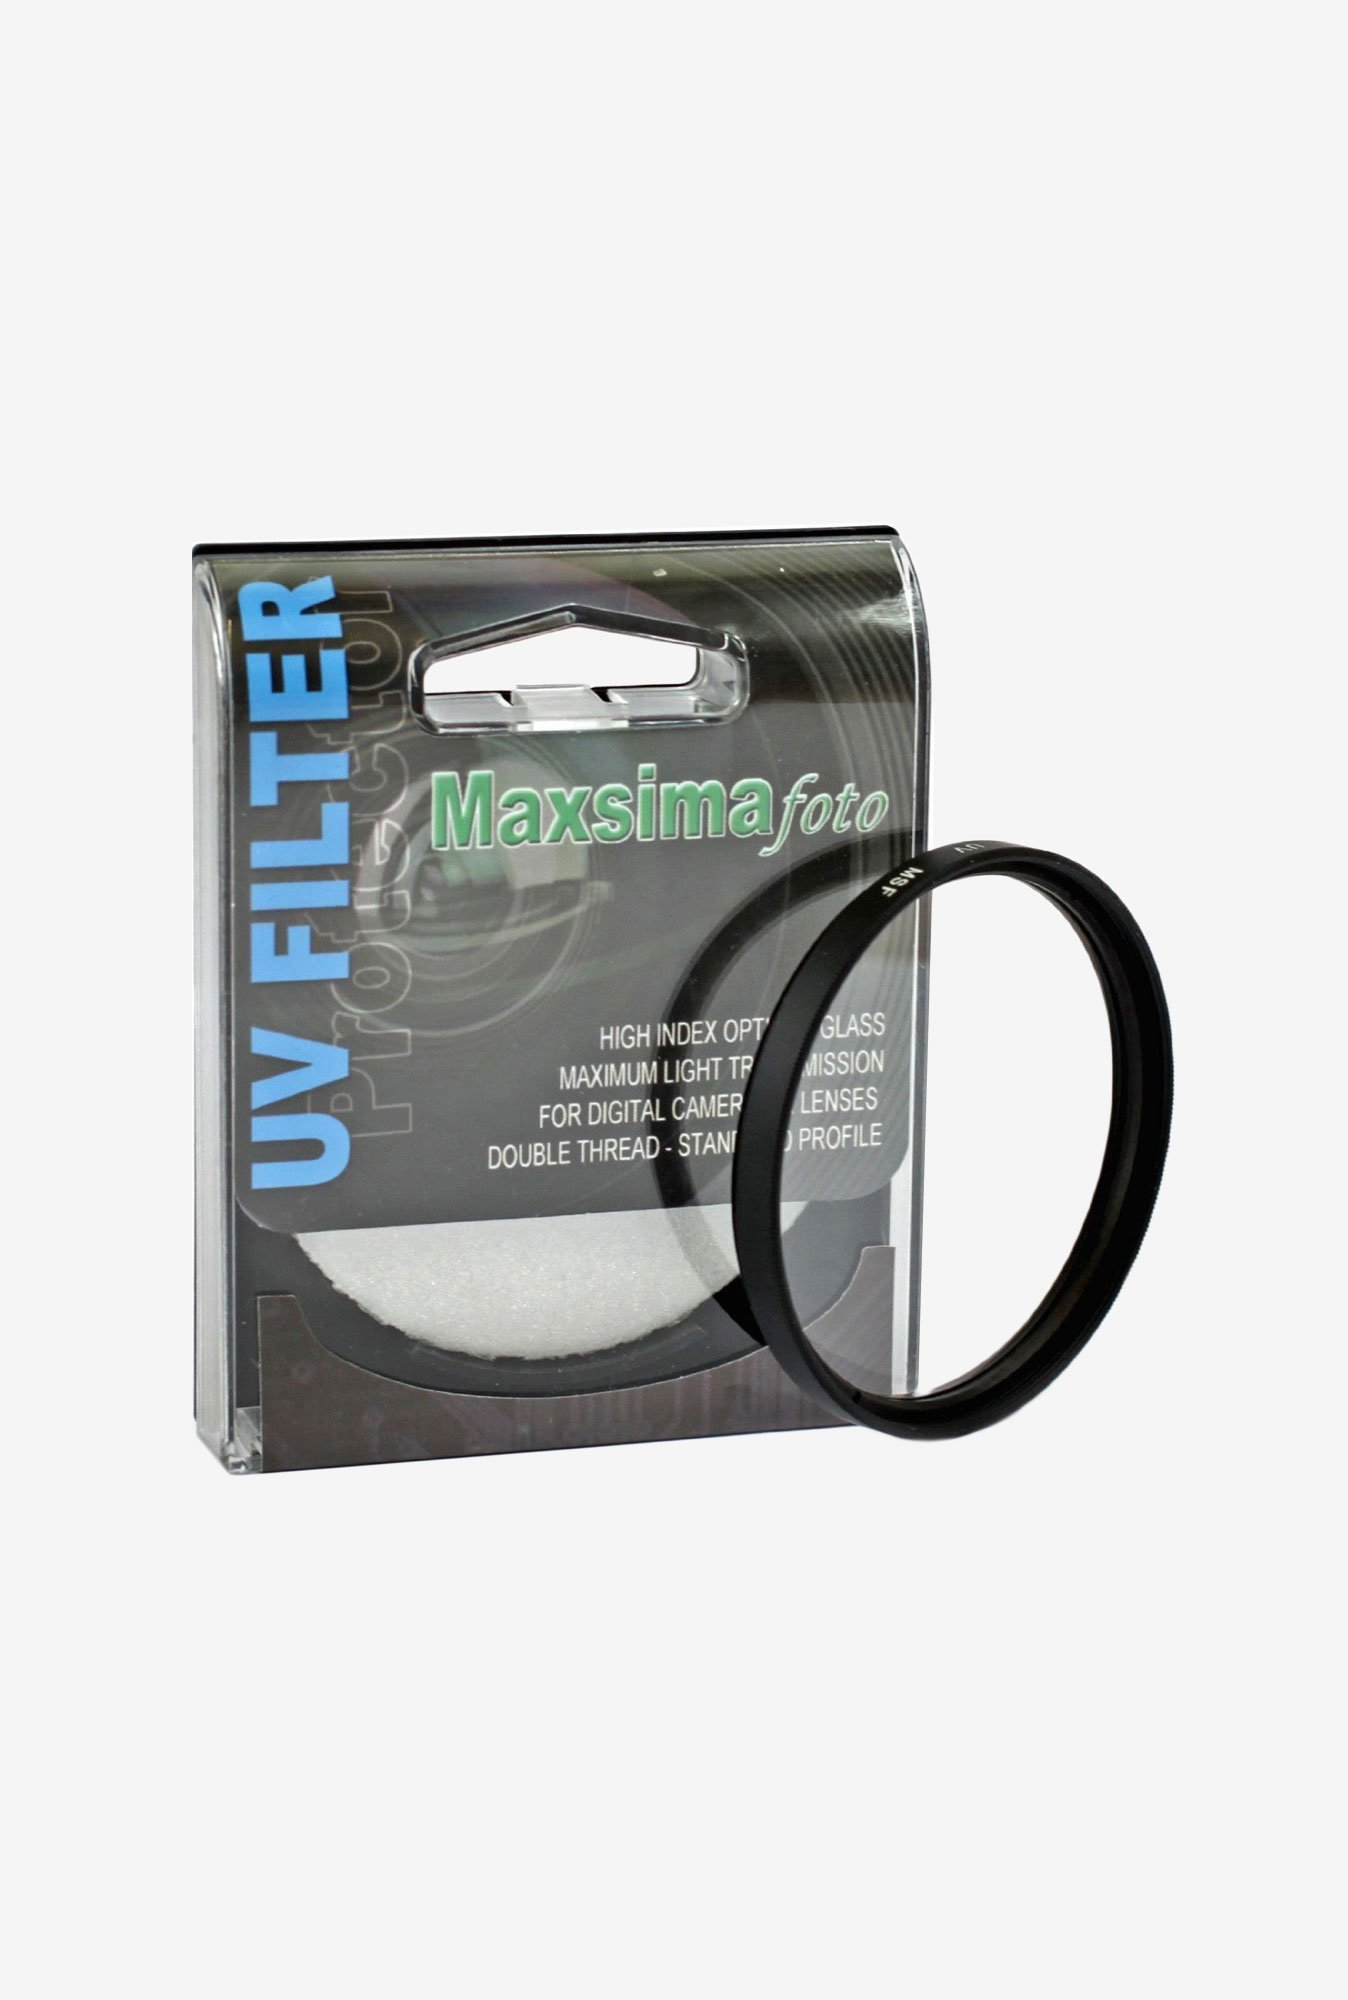 Maxsimafoto 49mm Uv Lens Filter for Pentax 43Mm F1.9